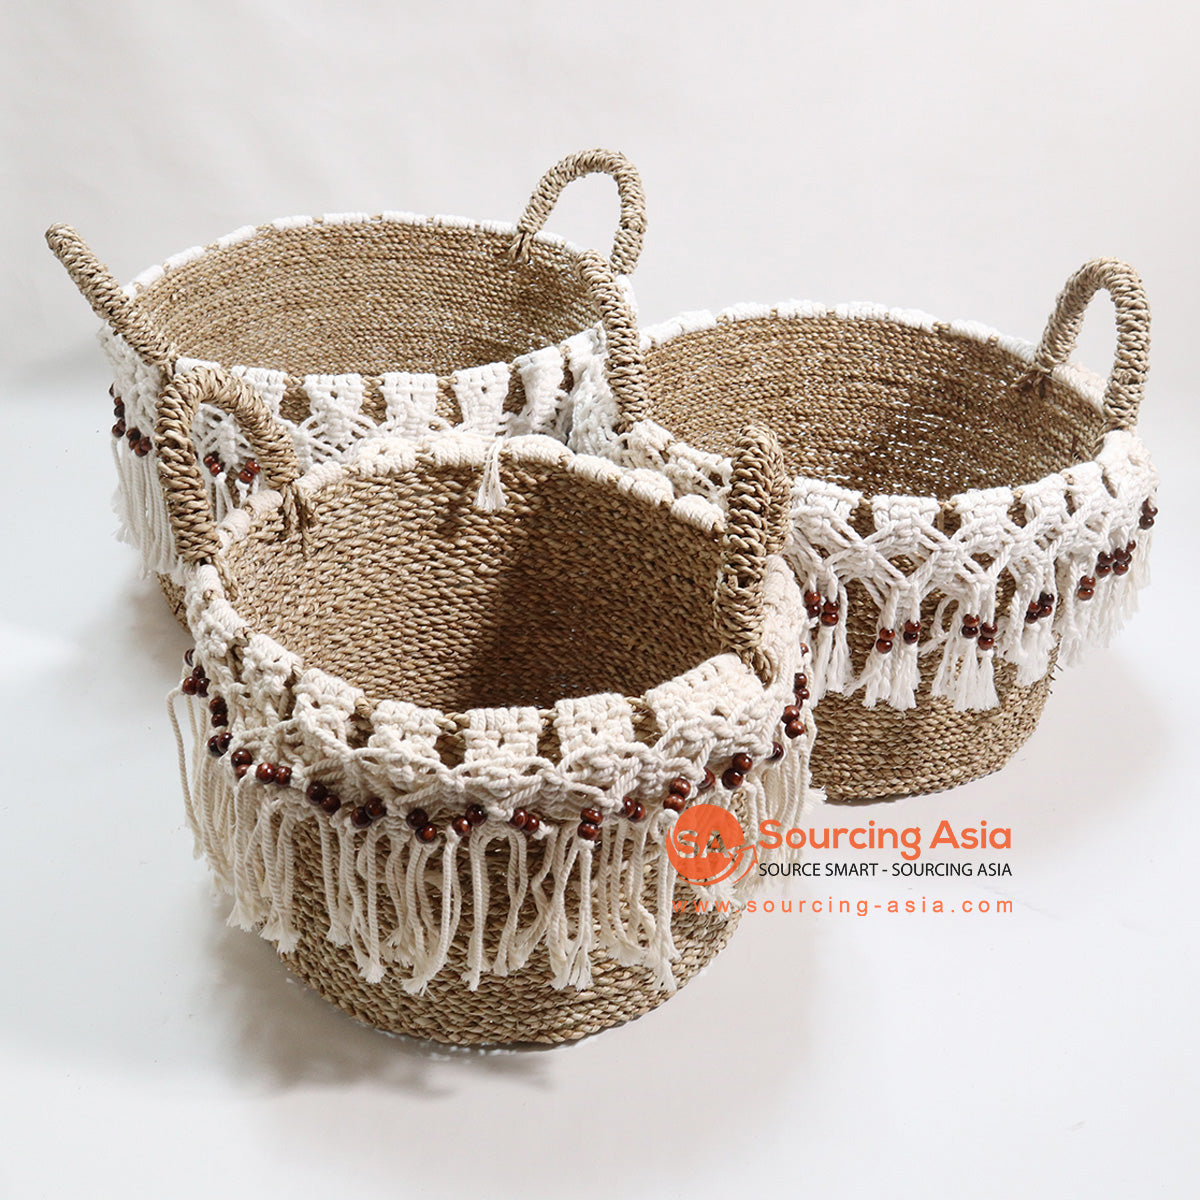 HBSC084 SET OF 3 SEA GRASS AND BEADED MACRAME BASKETS